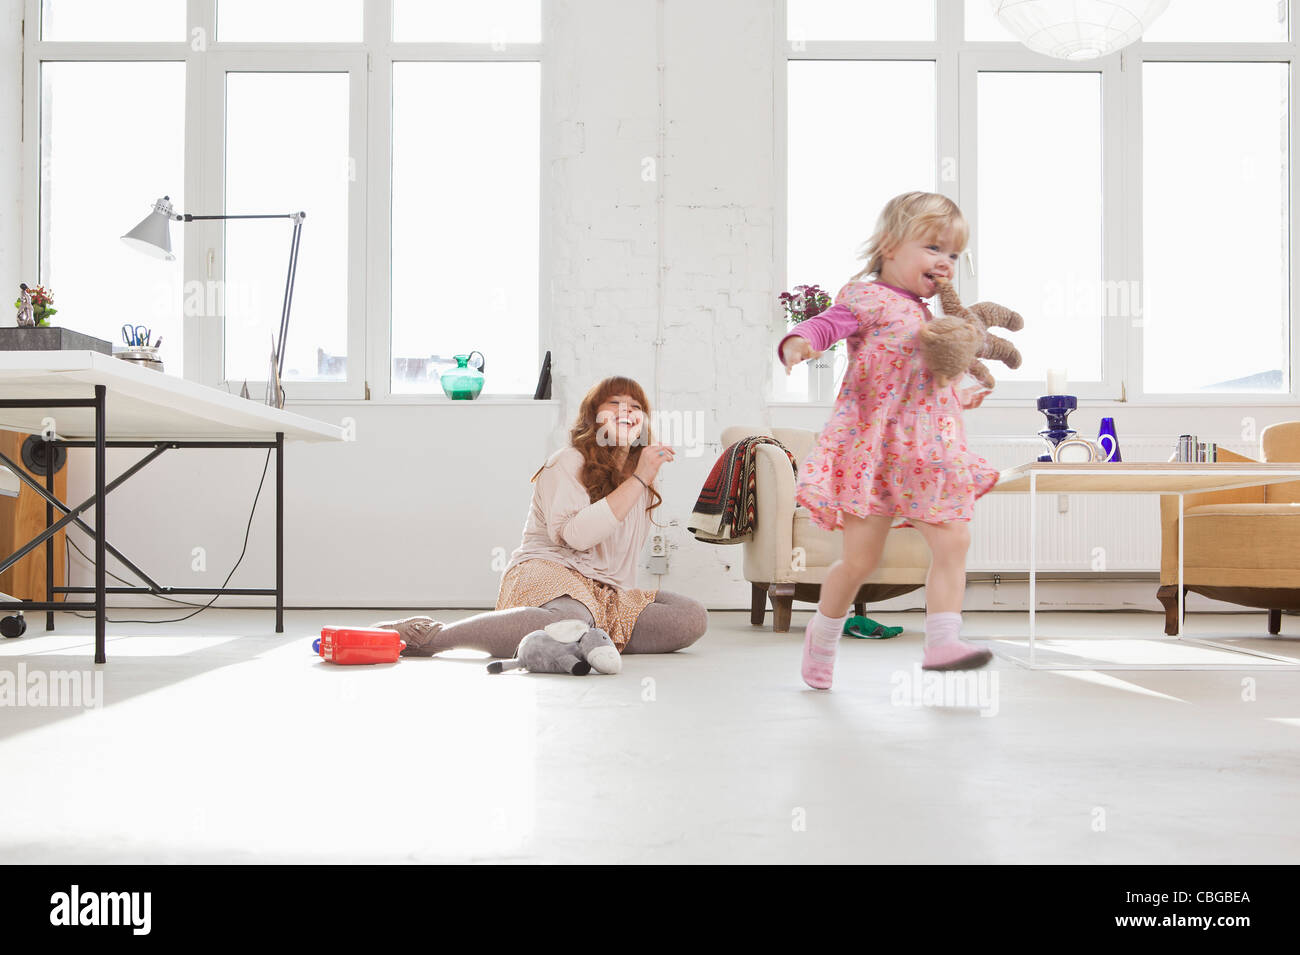 A young girl carrying a stuffed toy in her mouth running around Stock Photo